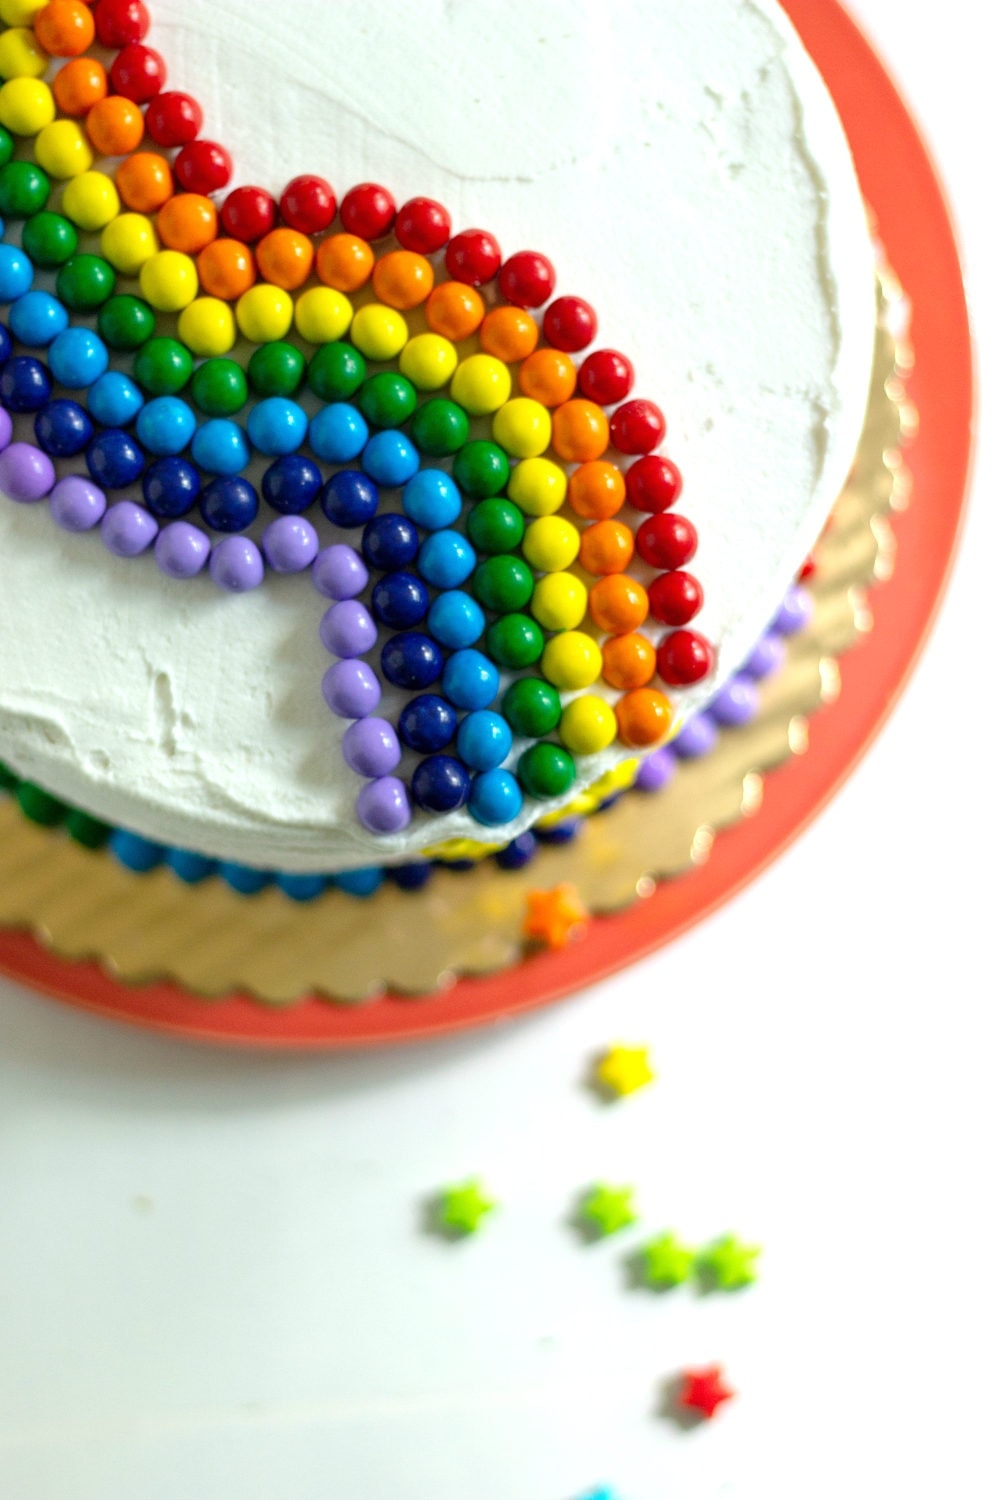 Quick and easy cake decorating - rainbow cake idea